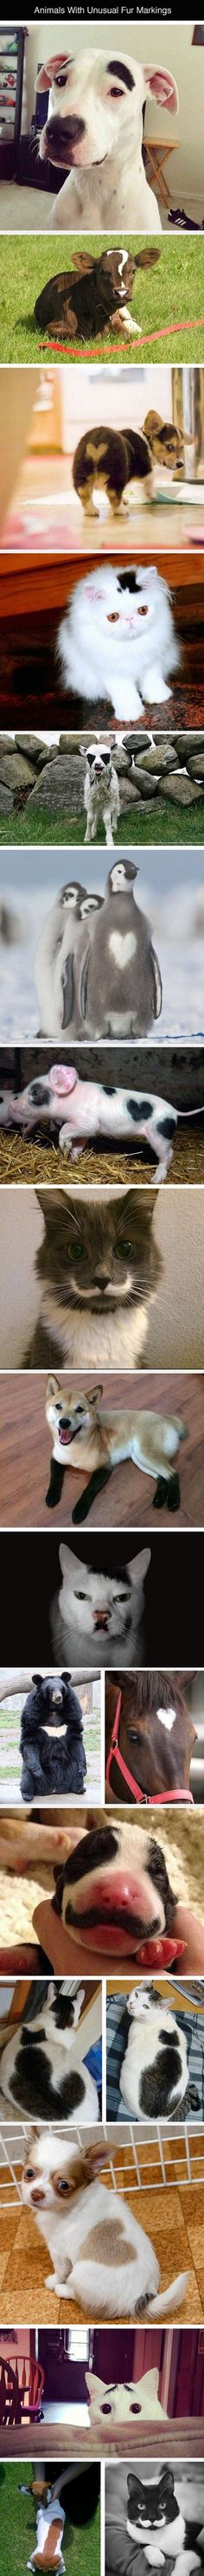 Animals With Unusual Fur Markings #funny